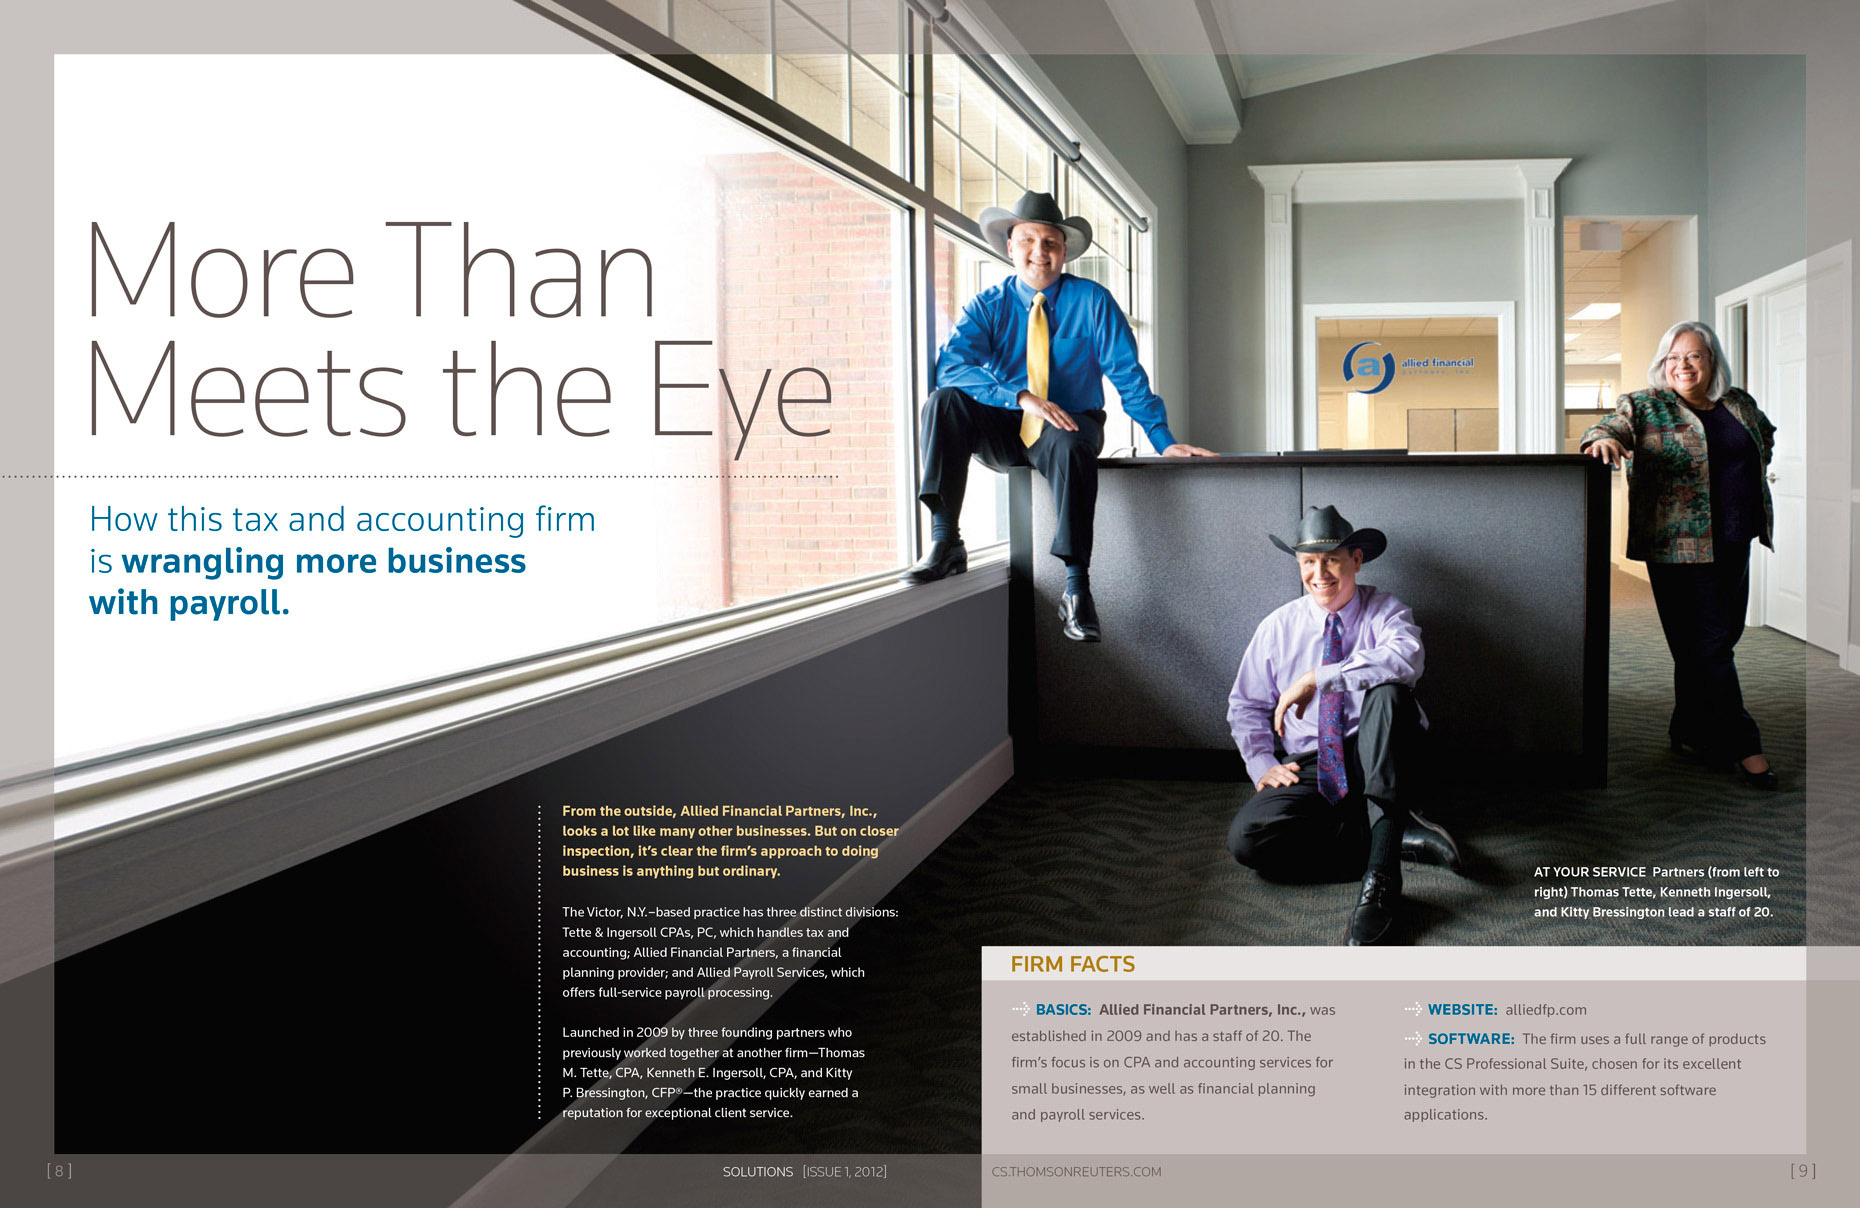 TR-Solutions-editorial-corporate-photography